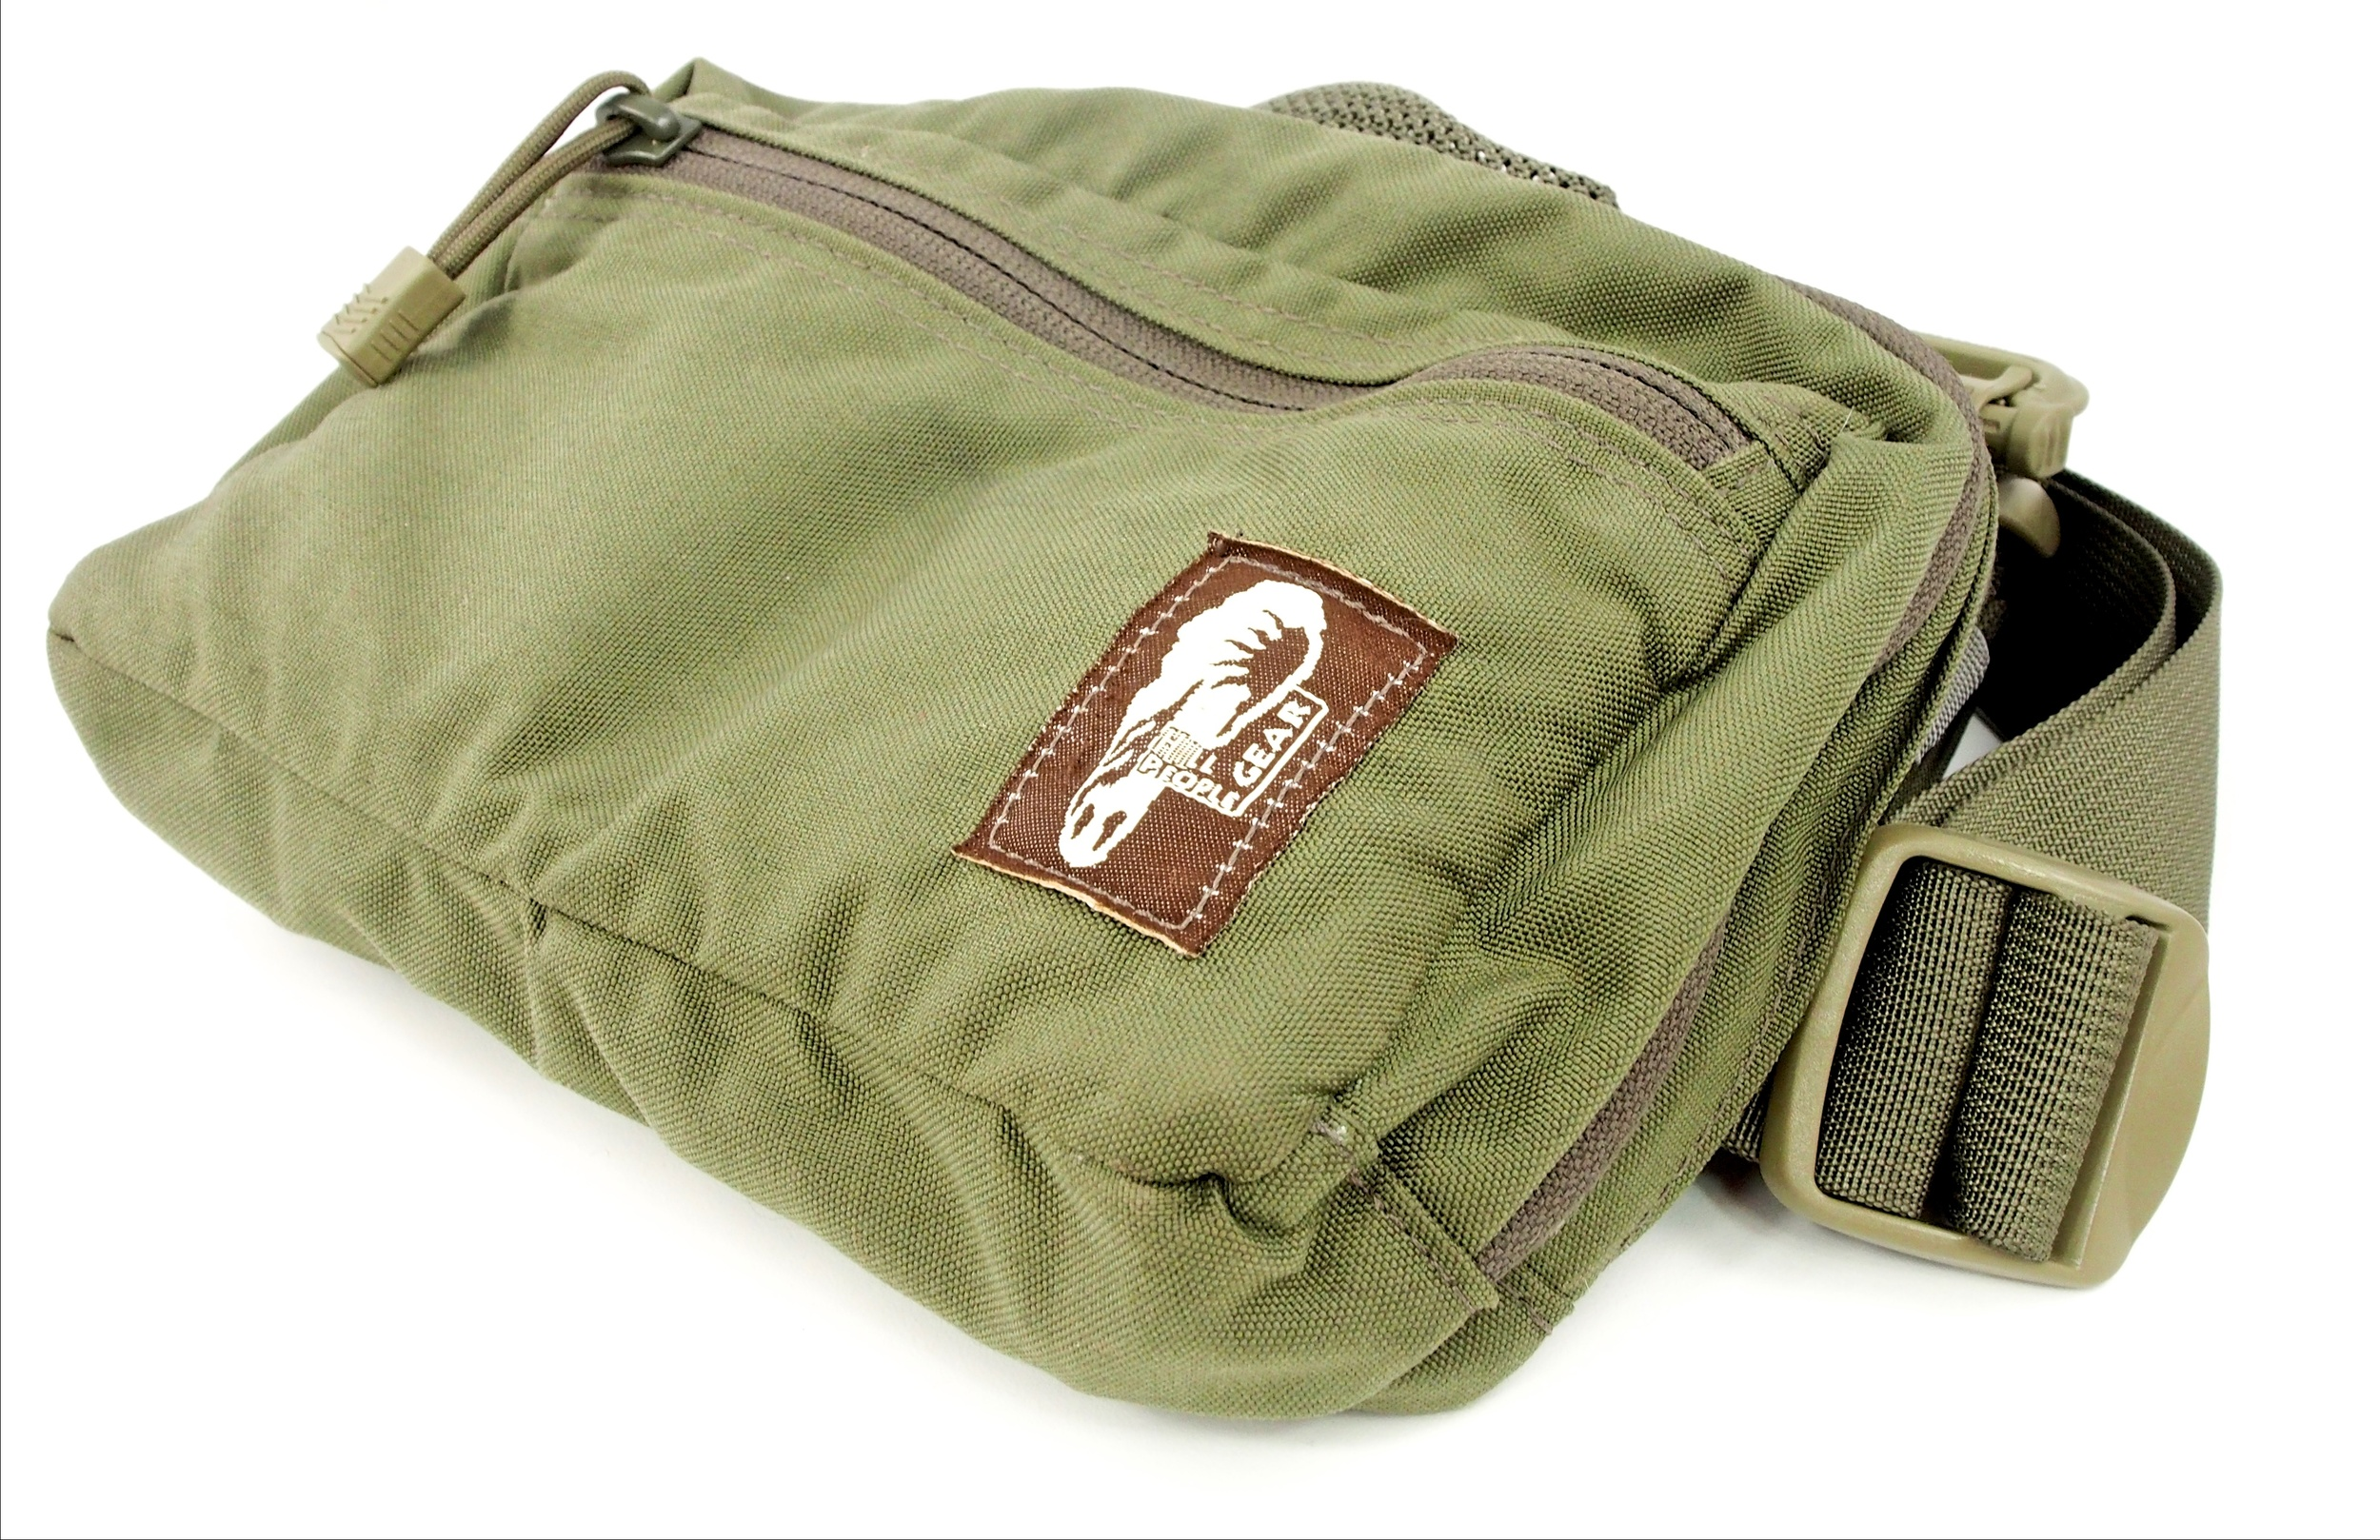 The Original Kit Bag and the Snubby Original are exactly the same except for sizing. The Snubby is built for those with smaller frames.